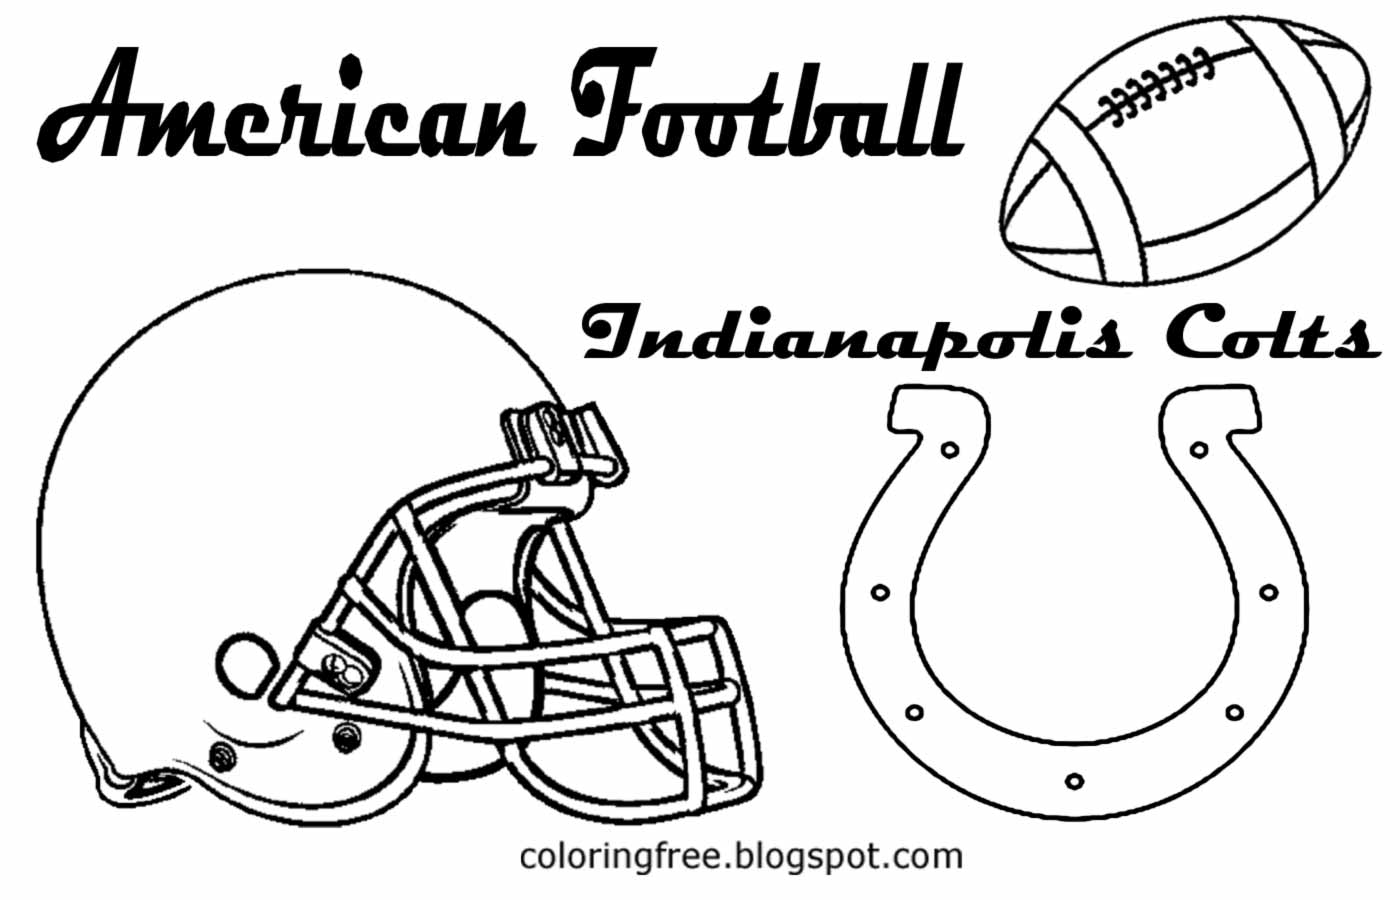 Indianapolis colts coloring pages